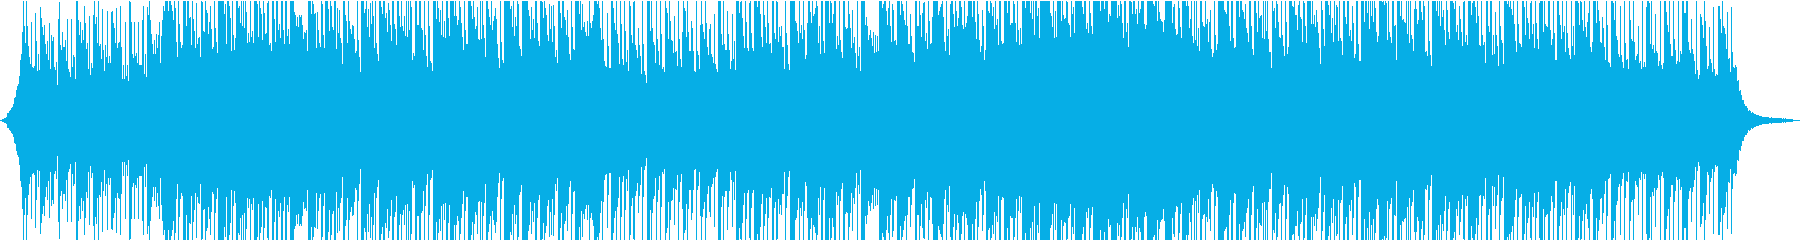 Japanese-style oriental corporate's reproduced waveform